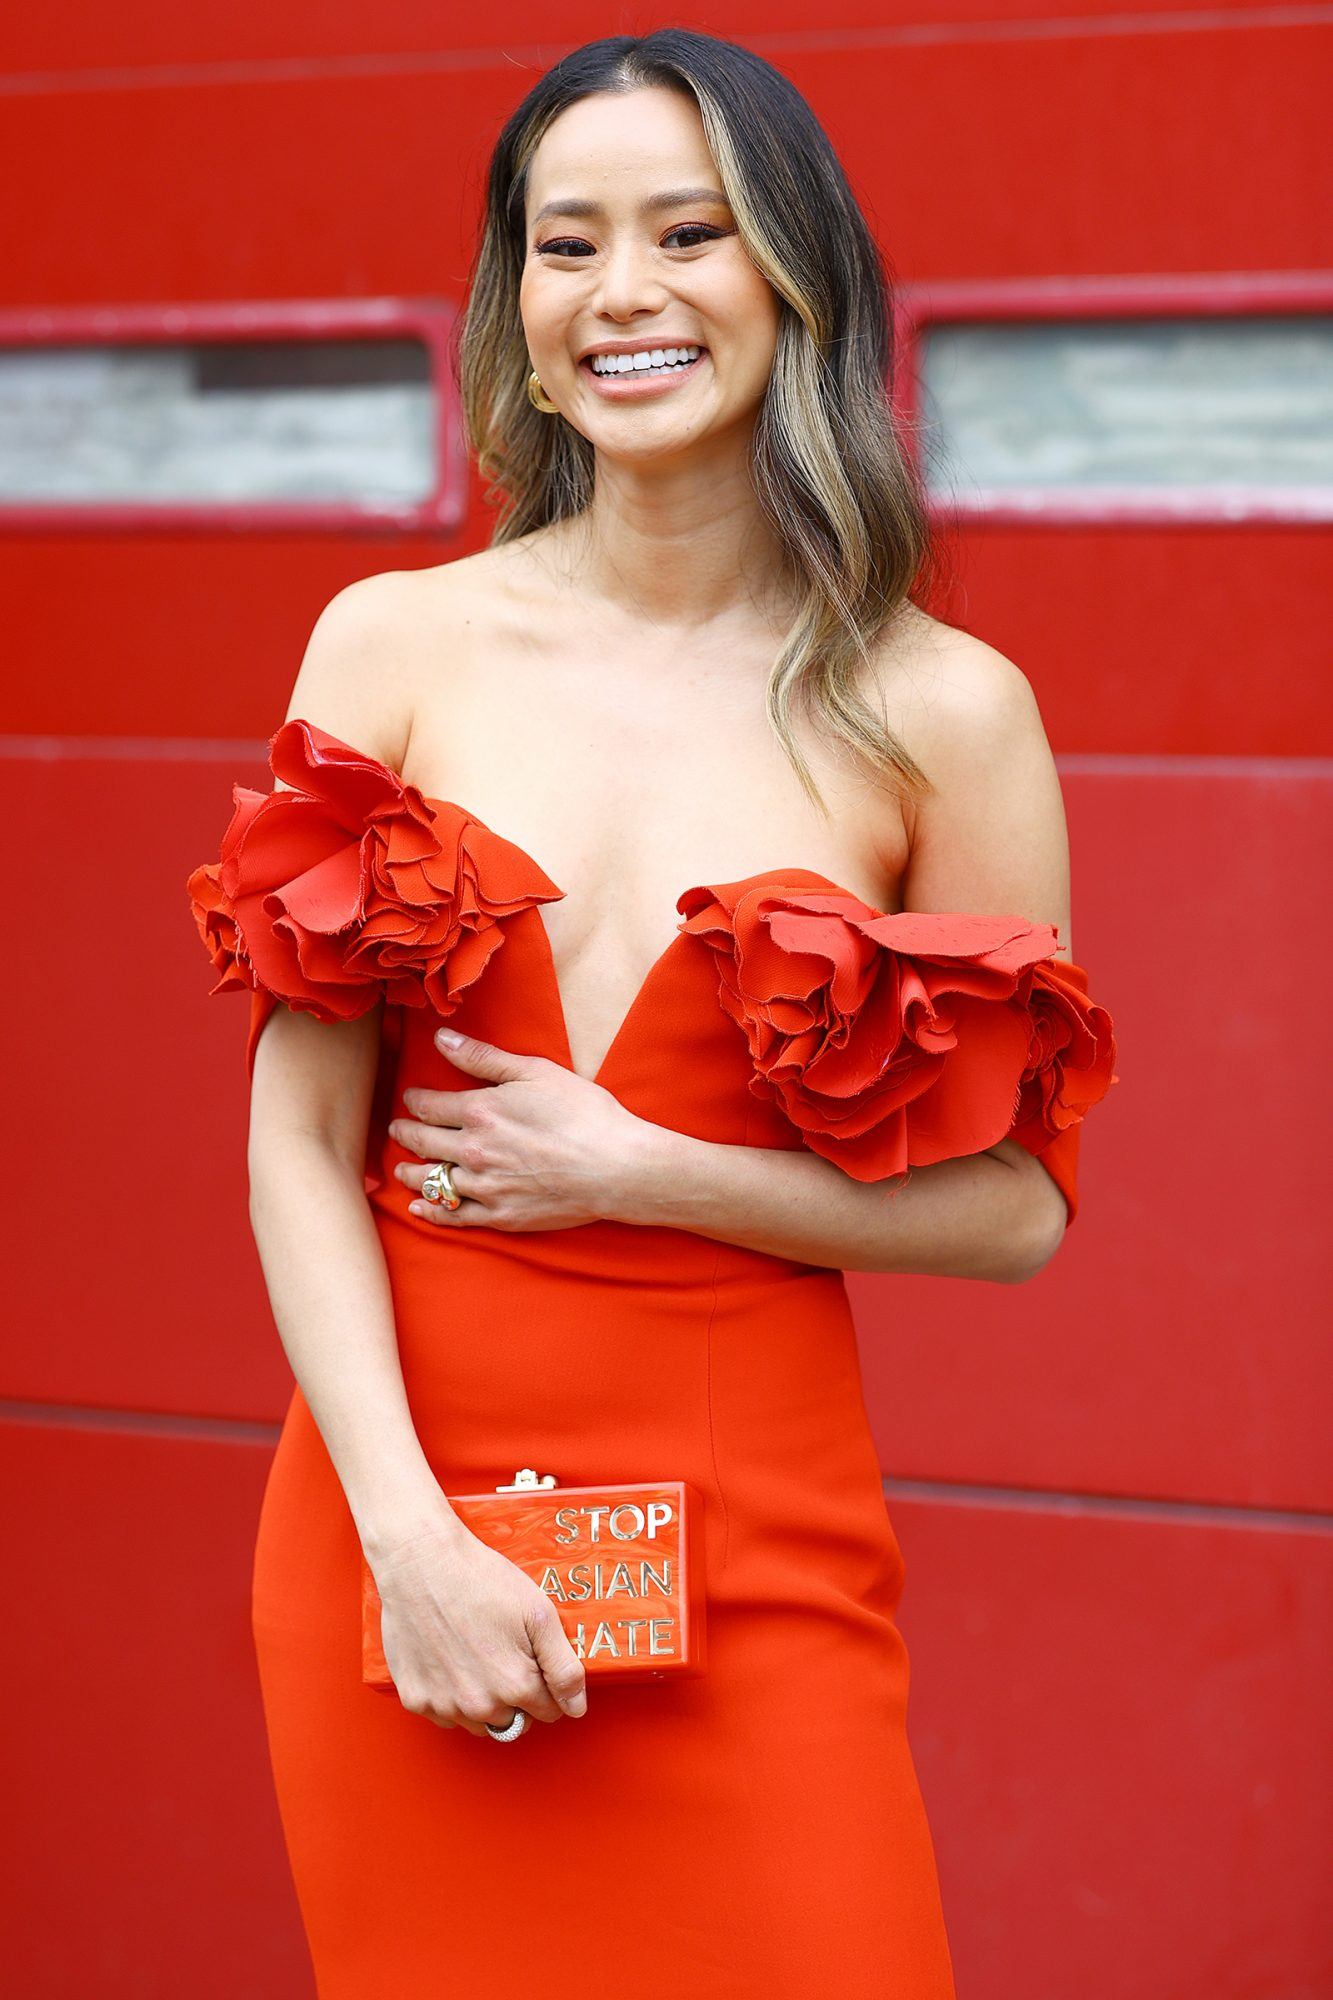 Jamie Chung is seen in her award show look for the 27th Annual Screen Actors Guild Awards on March 31, 2021 in New York City